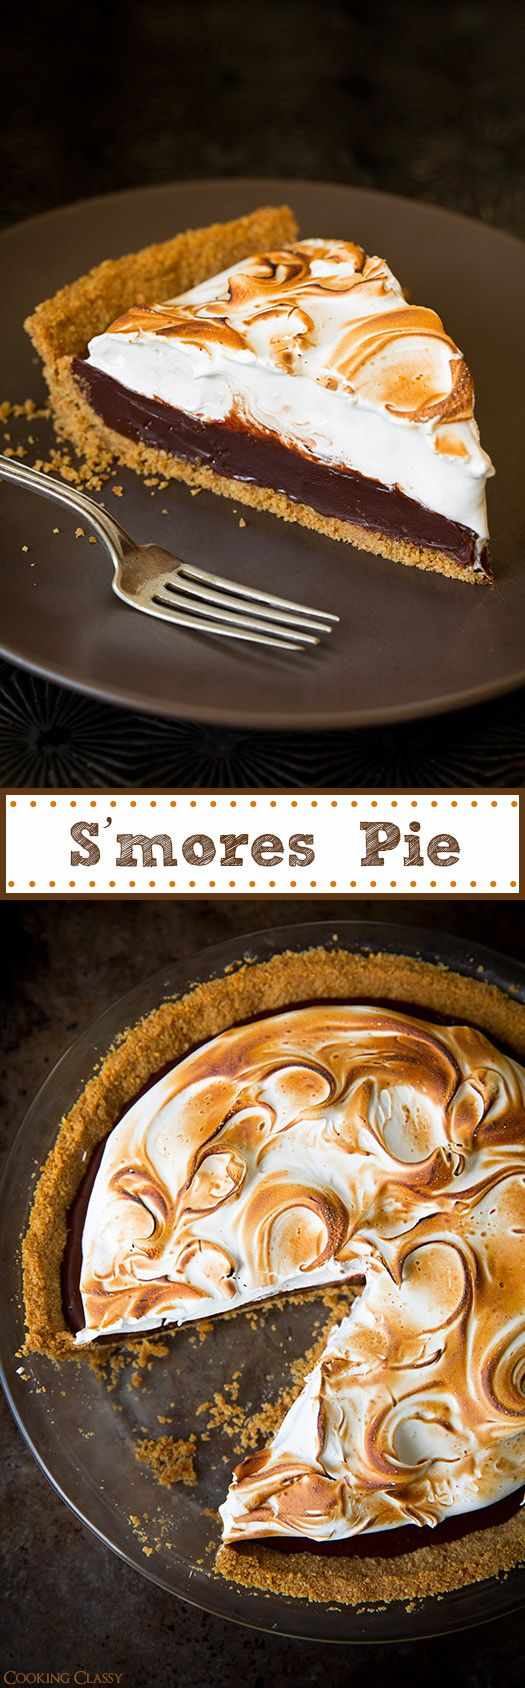 S'mores Pie - deliciously decadent!